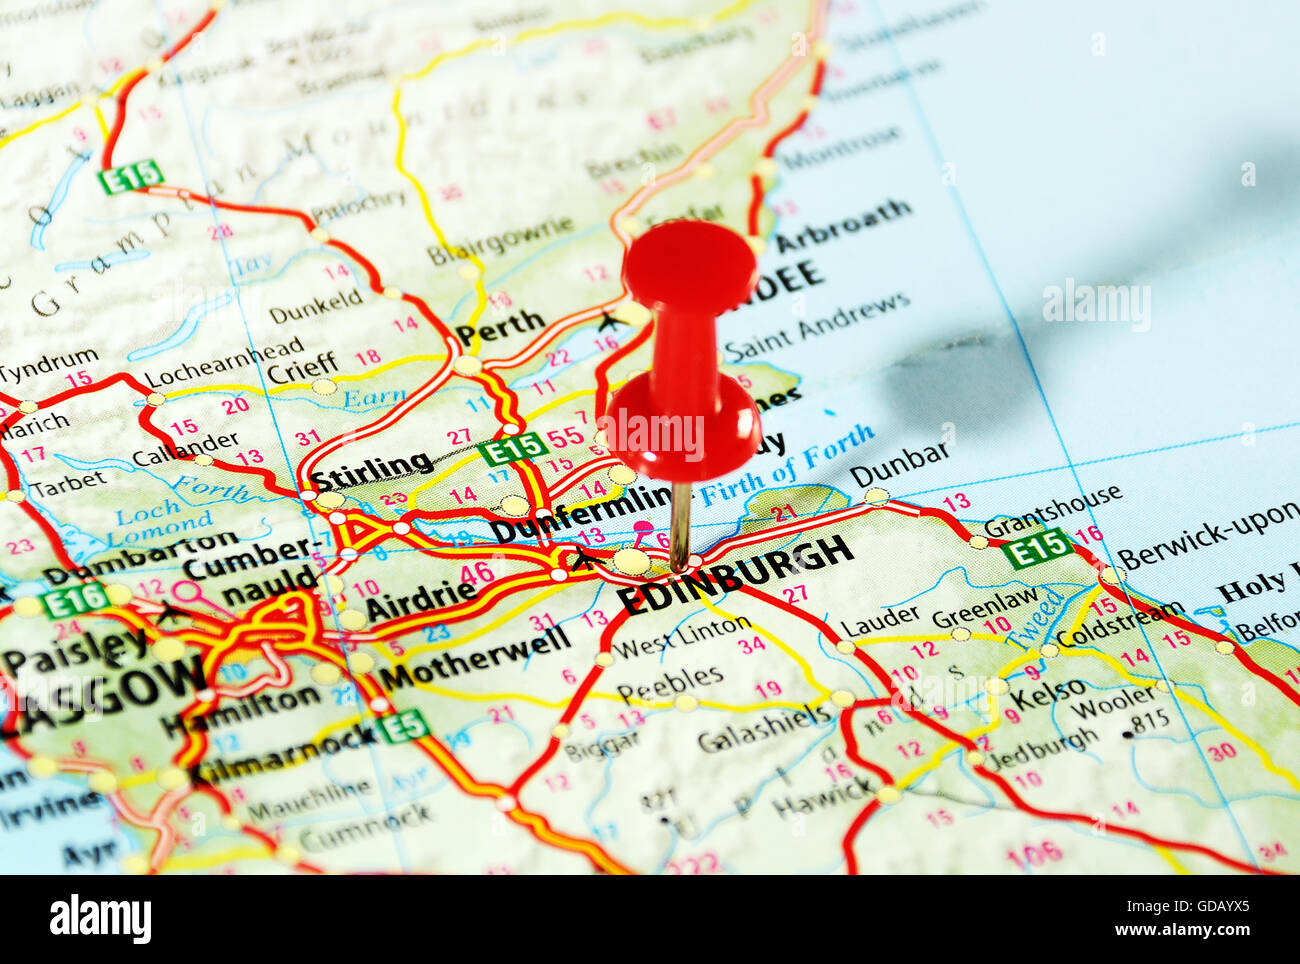 Holy Loch Scotland Map.Edinburgh Scotland United Kingdom Map And Pin Travel Concept